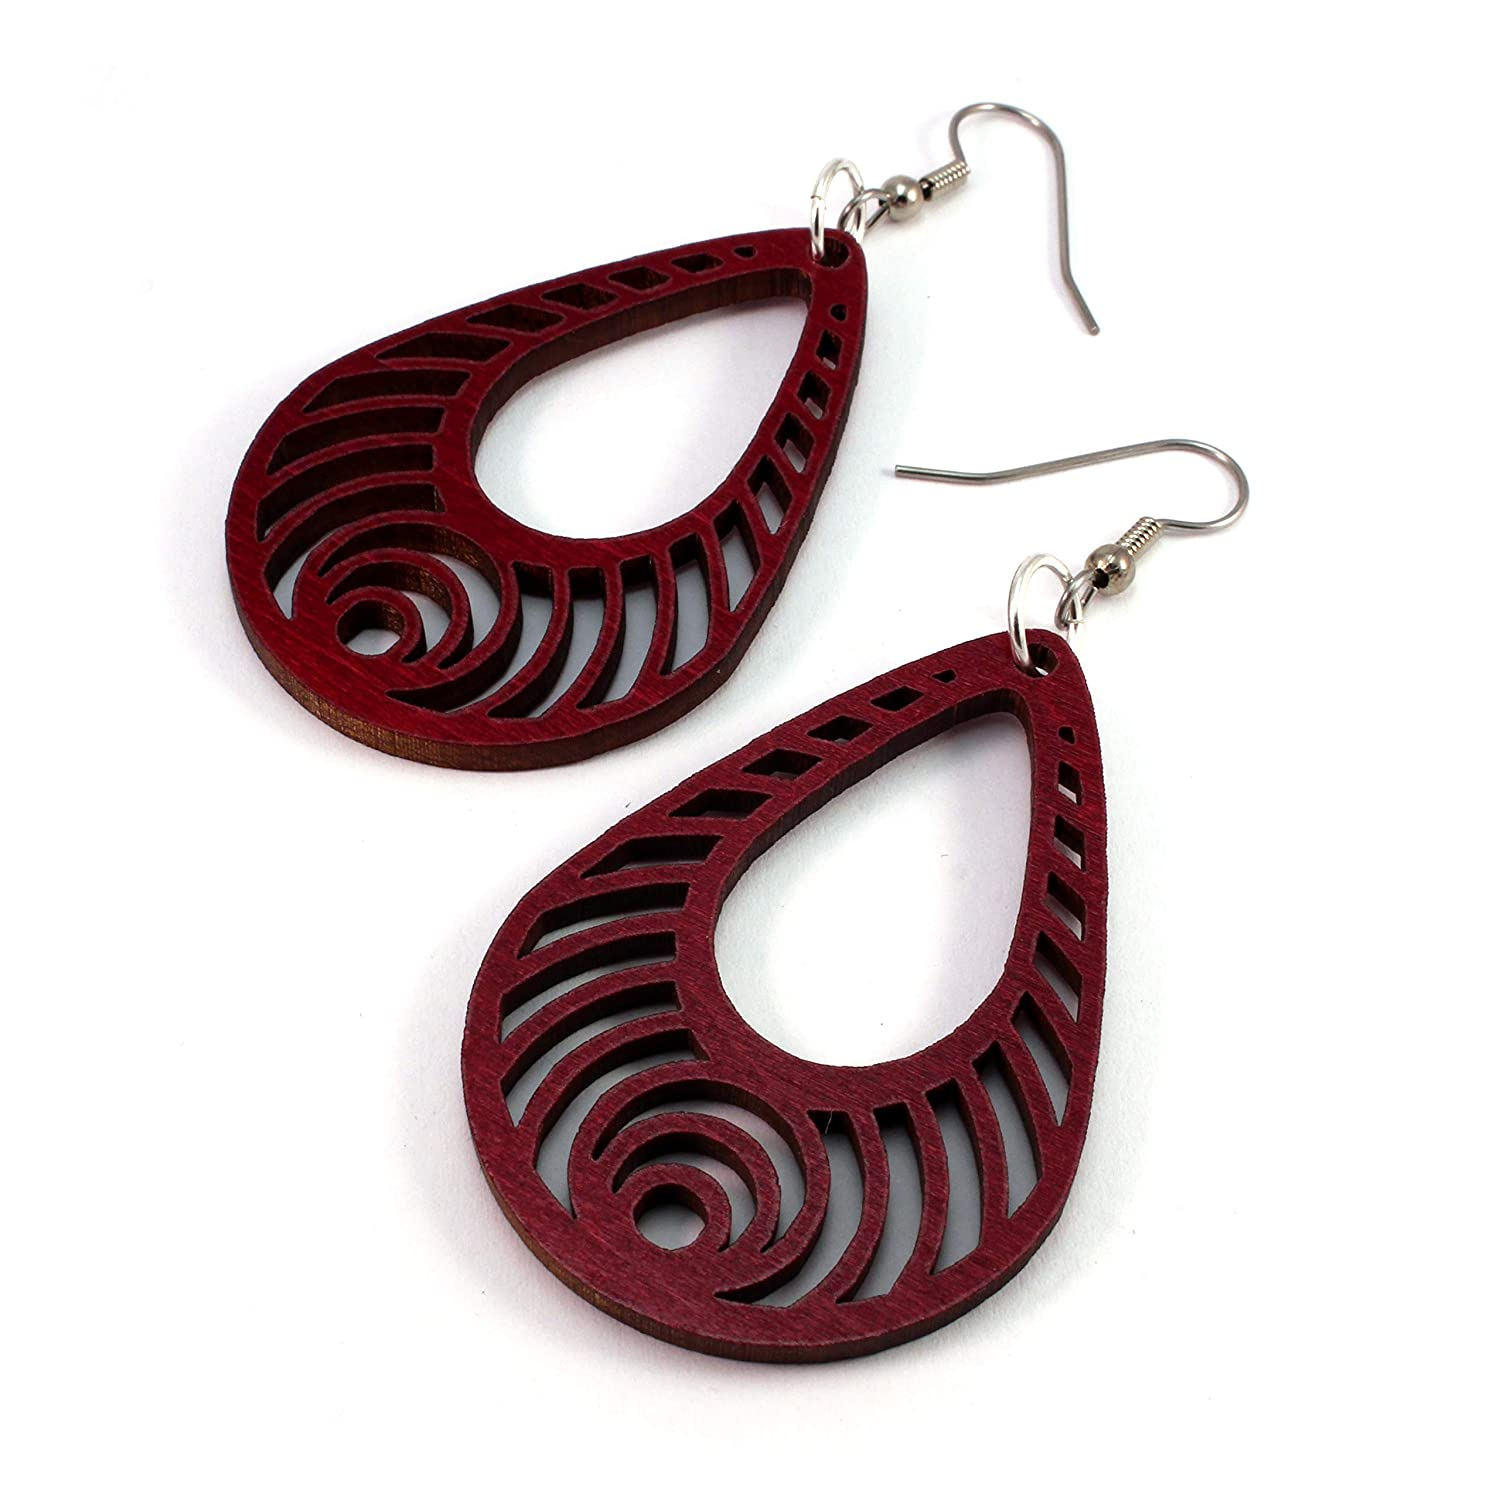 2 Small - Hook Dangle Drop Wooden Earrings Bass Ripple Teardrop Earrings made of Sustainable Red-Stained Maple Wood